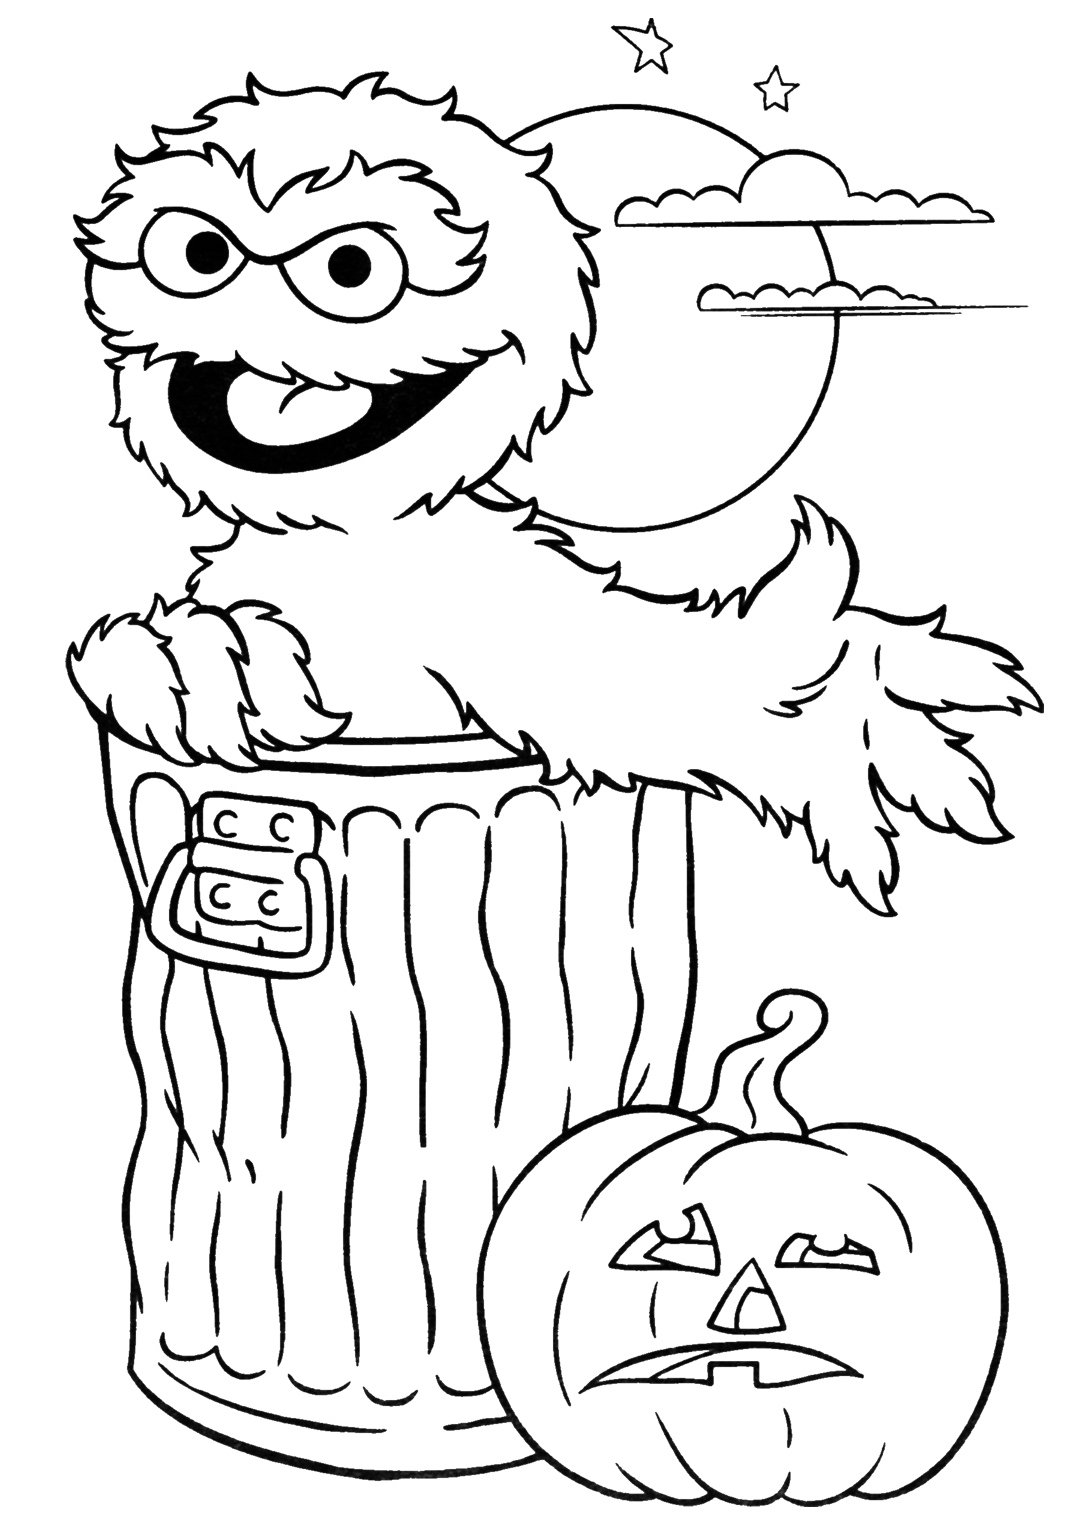 Coloring Pages Kid Halloween Coloring Pages printable halloween coloring pages me sheets